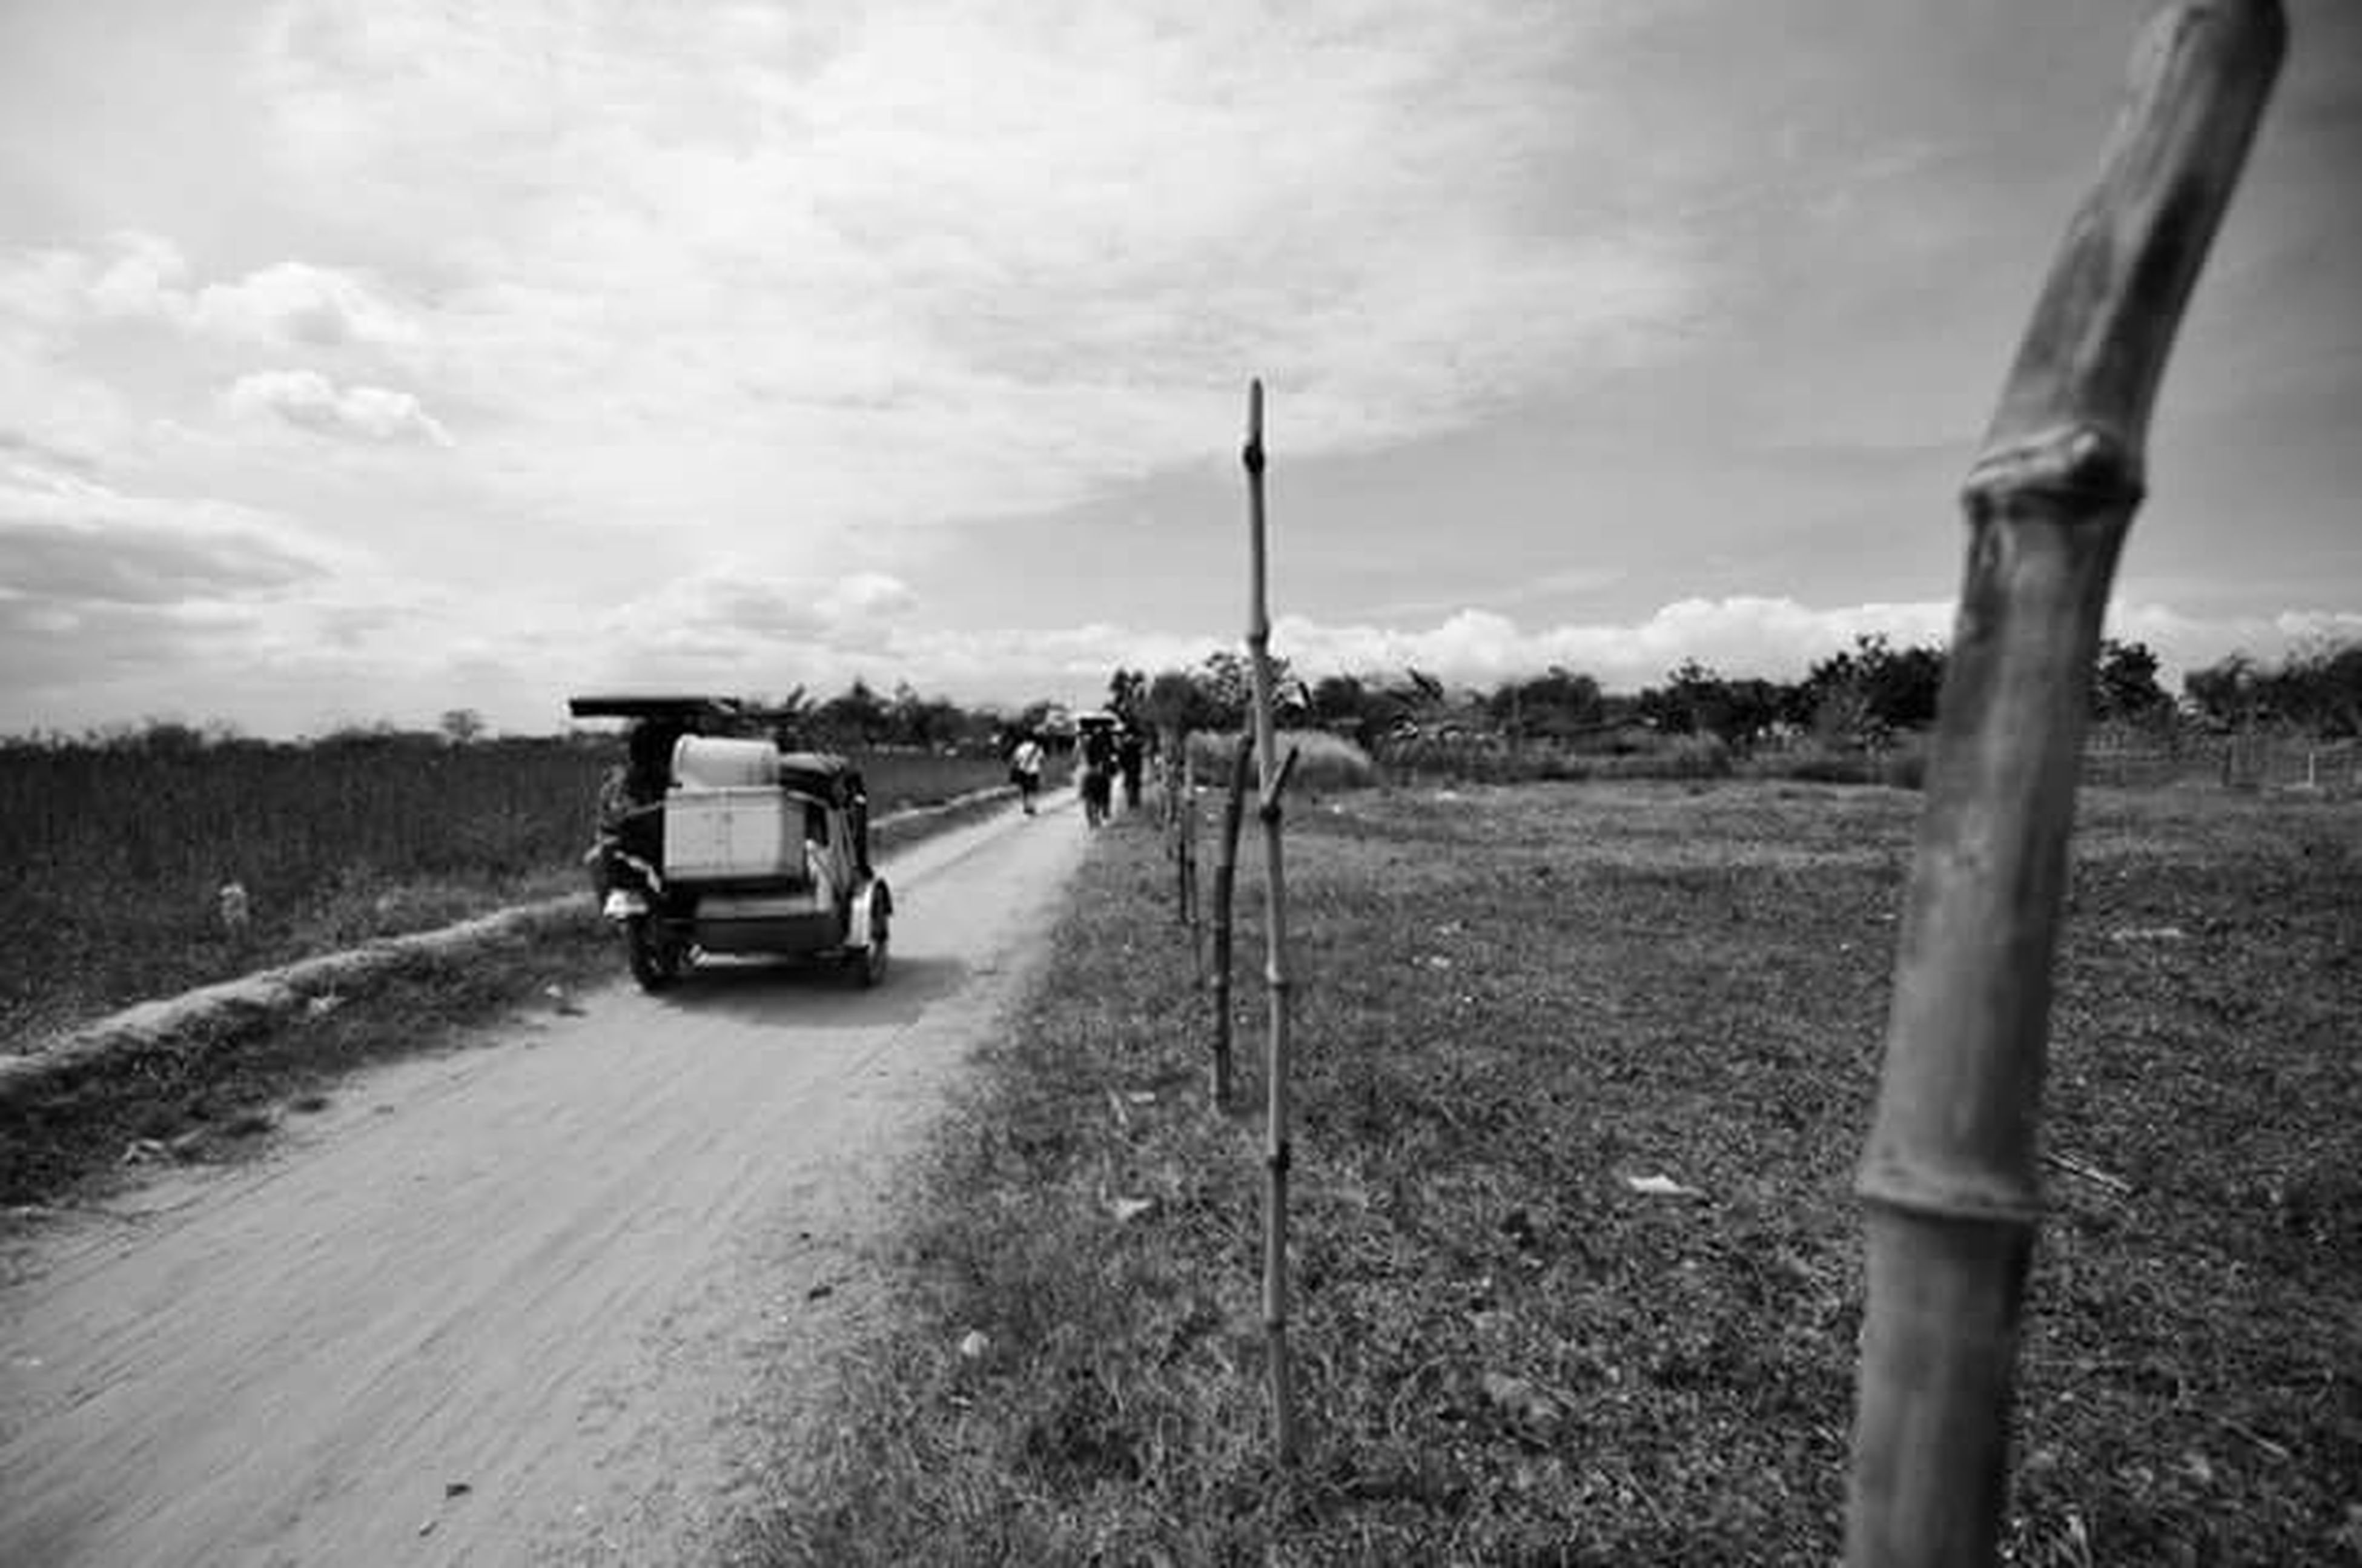 transportation, land vehicle, sky, mode of transport, road, cloud - sky, bicycle, car, men, grass, landscape, on the move, field, riding, the way forward, cloud, dirt road, country road